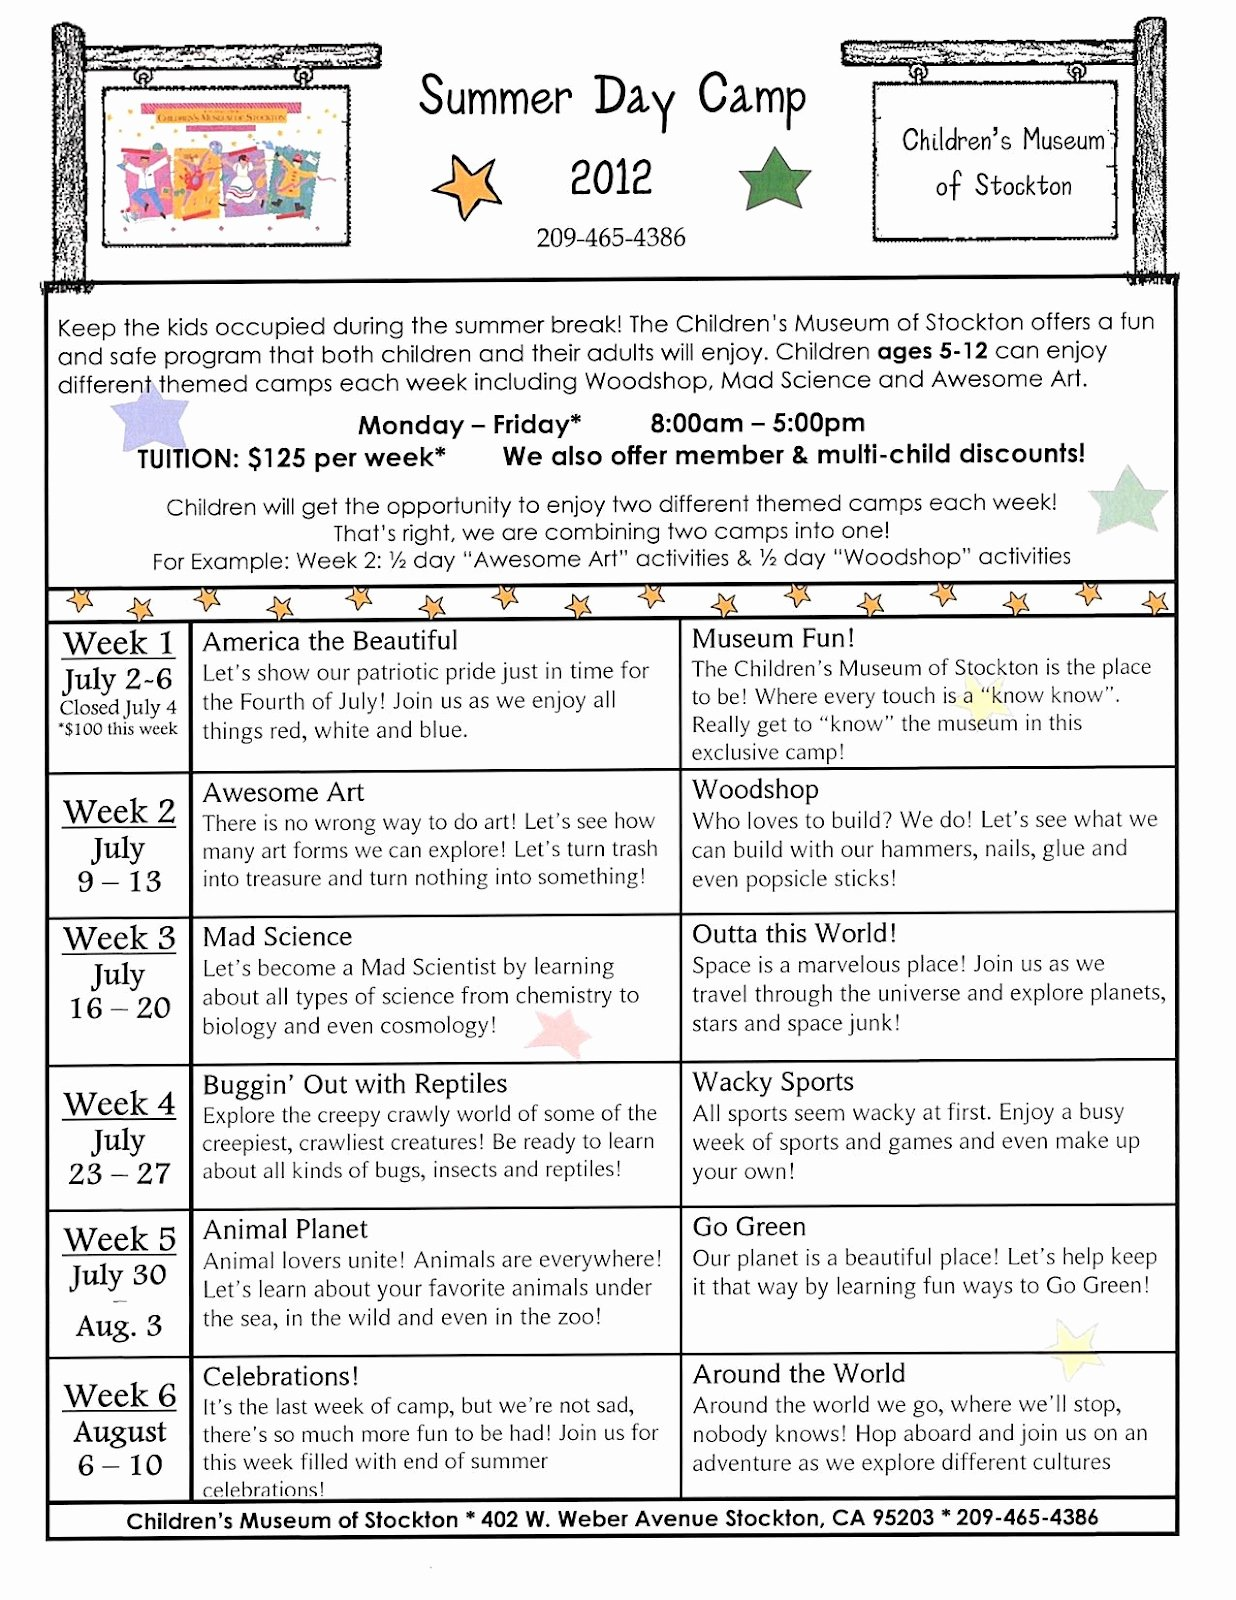 Summer Camp Schedule Templates Inspirational Children S Museum Of Stockton